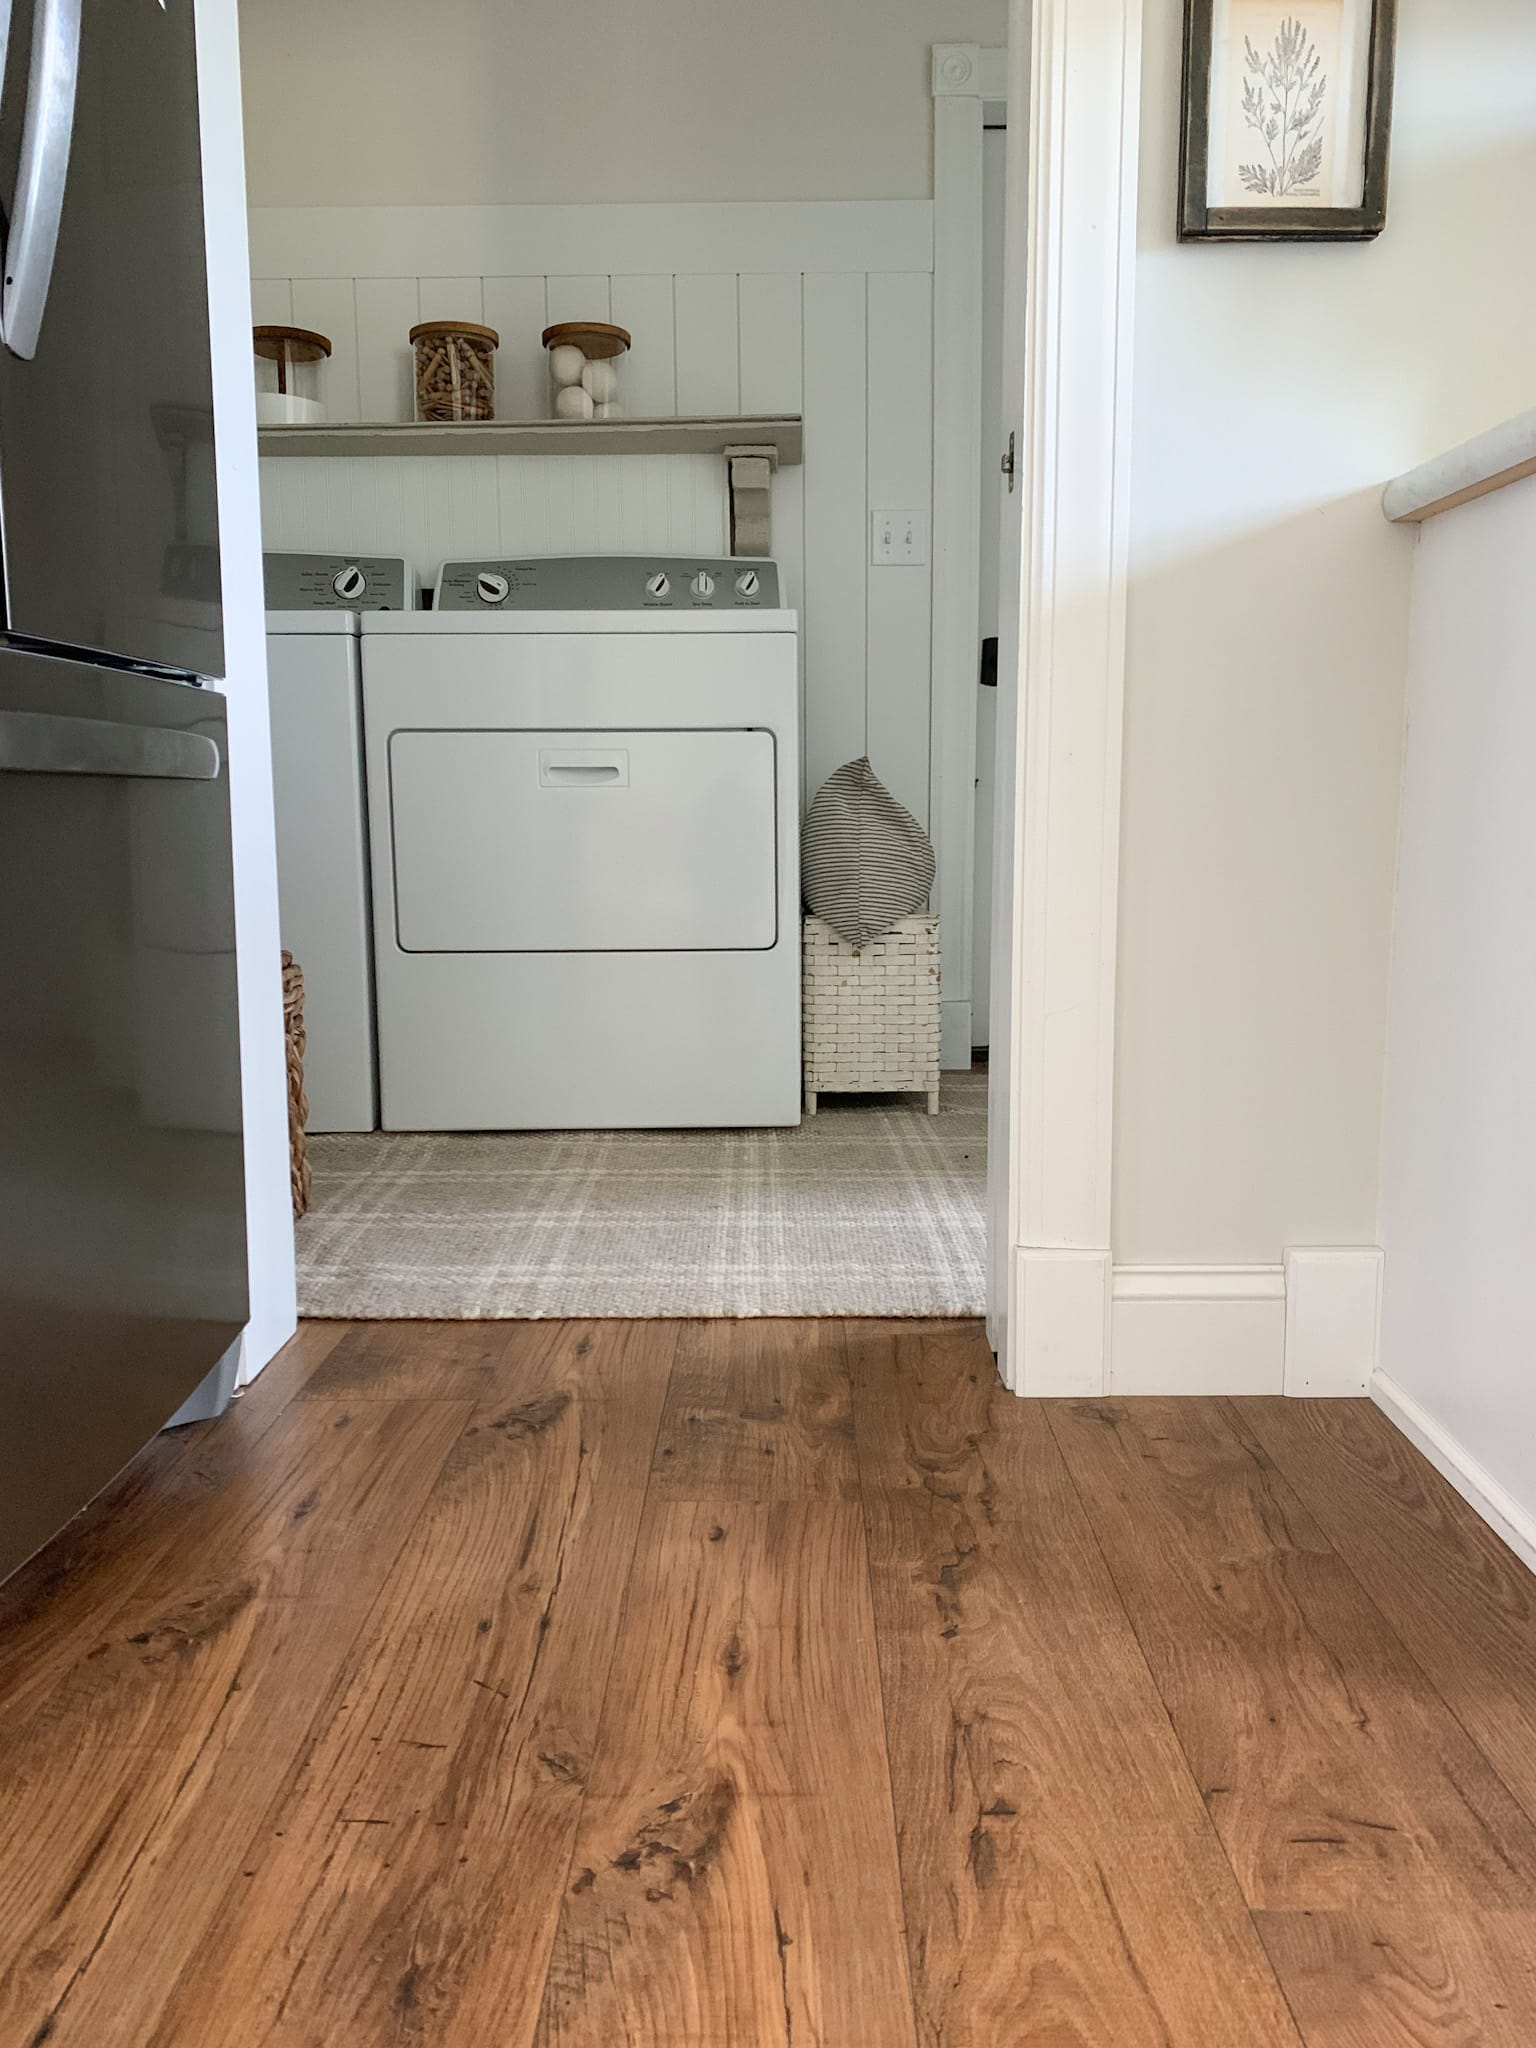 Pergo Wide Plank Laminate Flooring In, What Is The Difference Between Pergo And Laminate Flooring